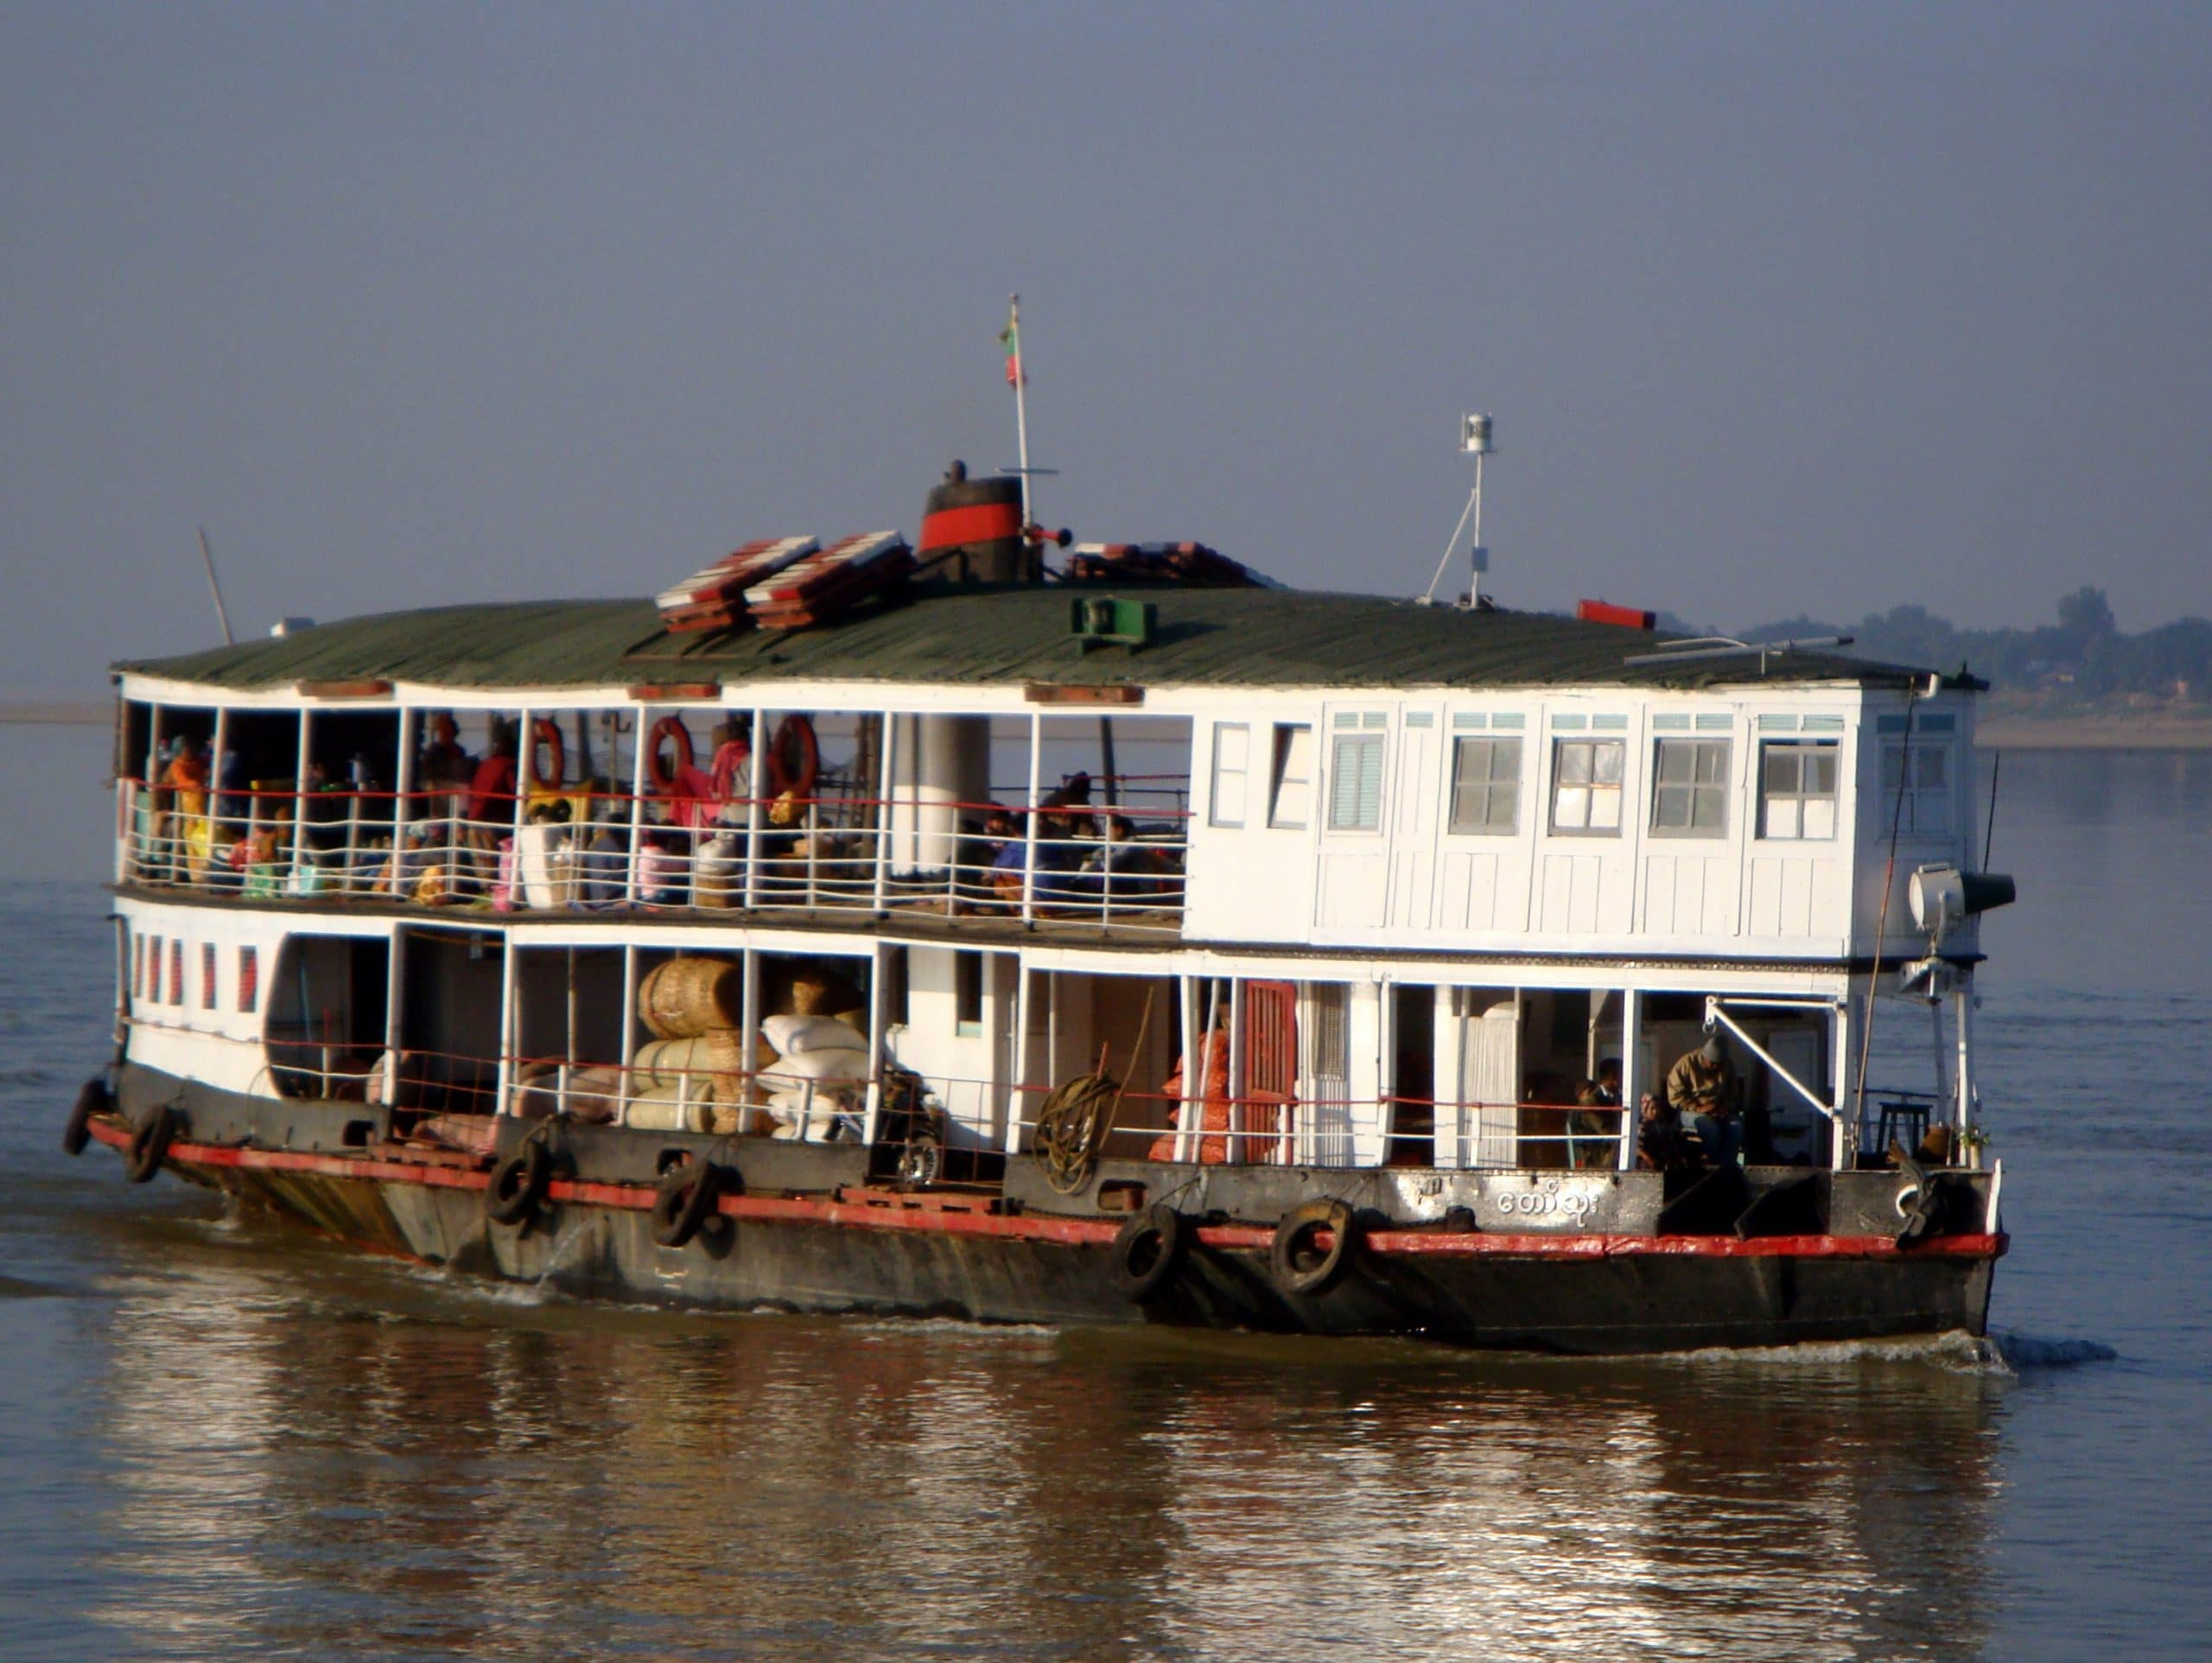 Feasibility Study for Public Transport on the Chindwin River